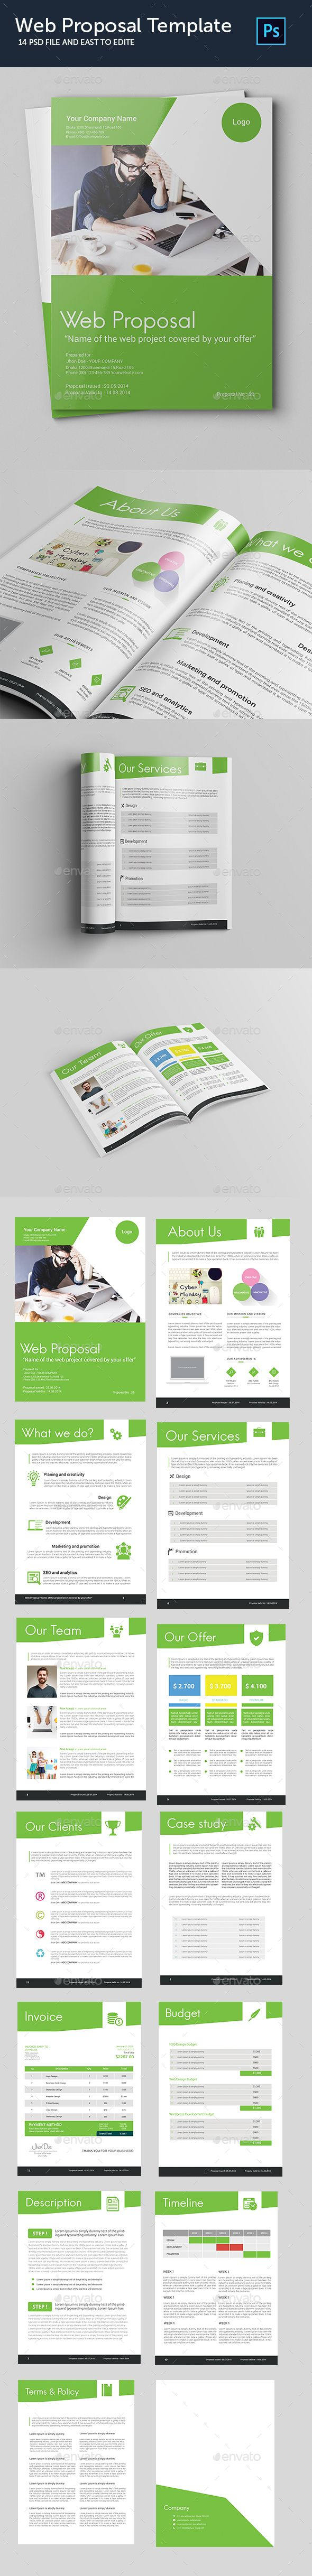 Web Proposal Template PSD. Download here: http://graphicriver.net/item/web-proposal-template/16392886?ref=ksioks